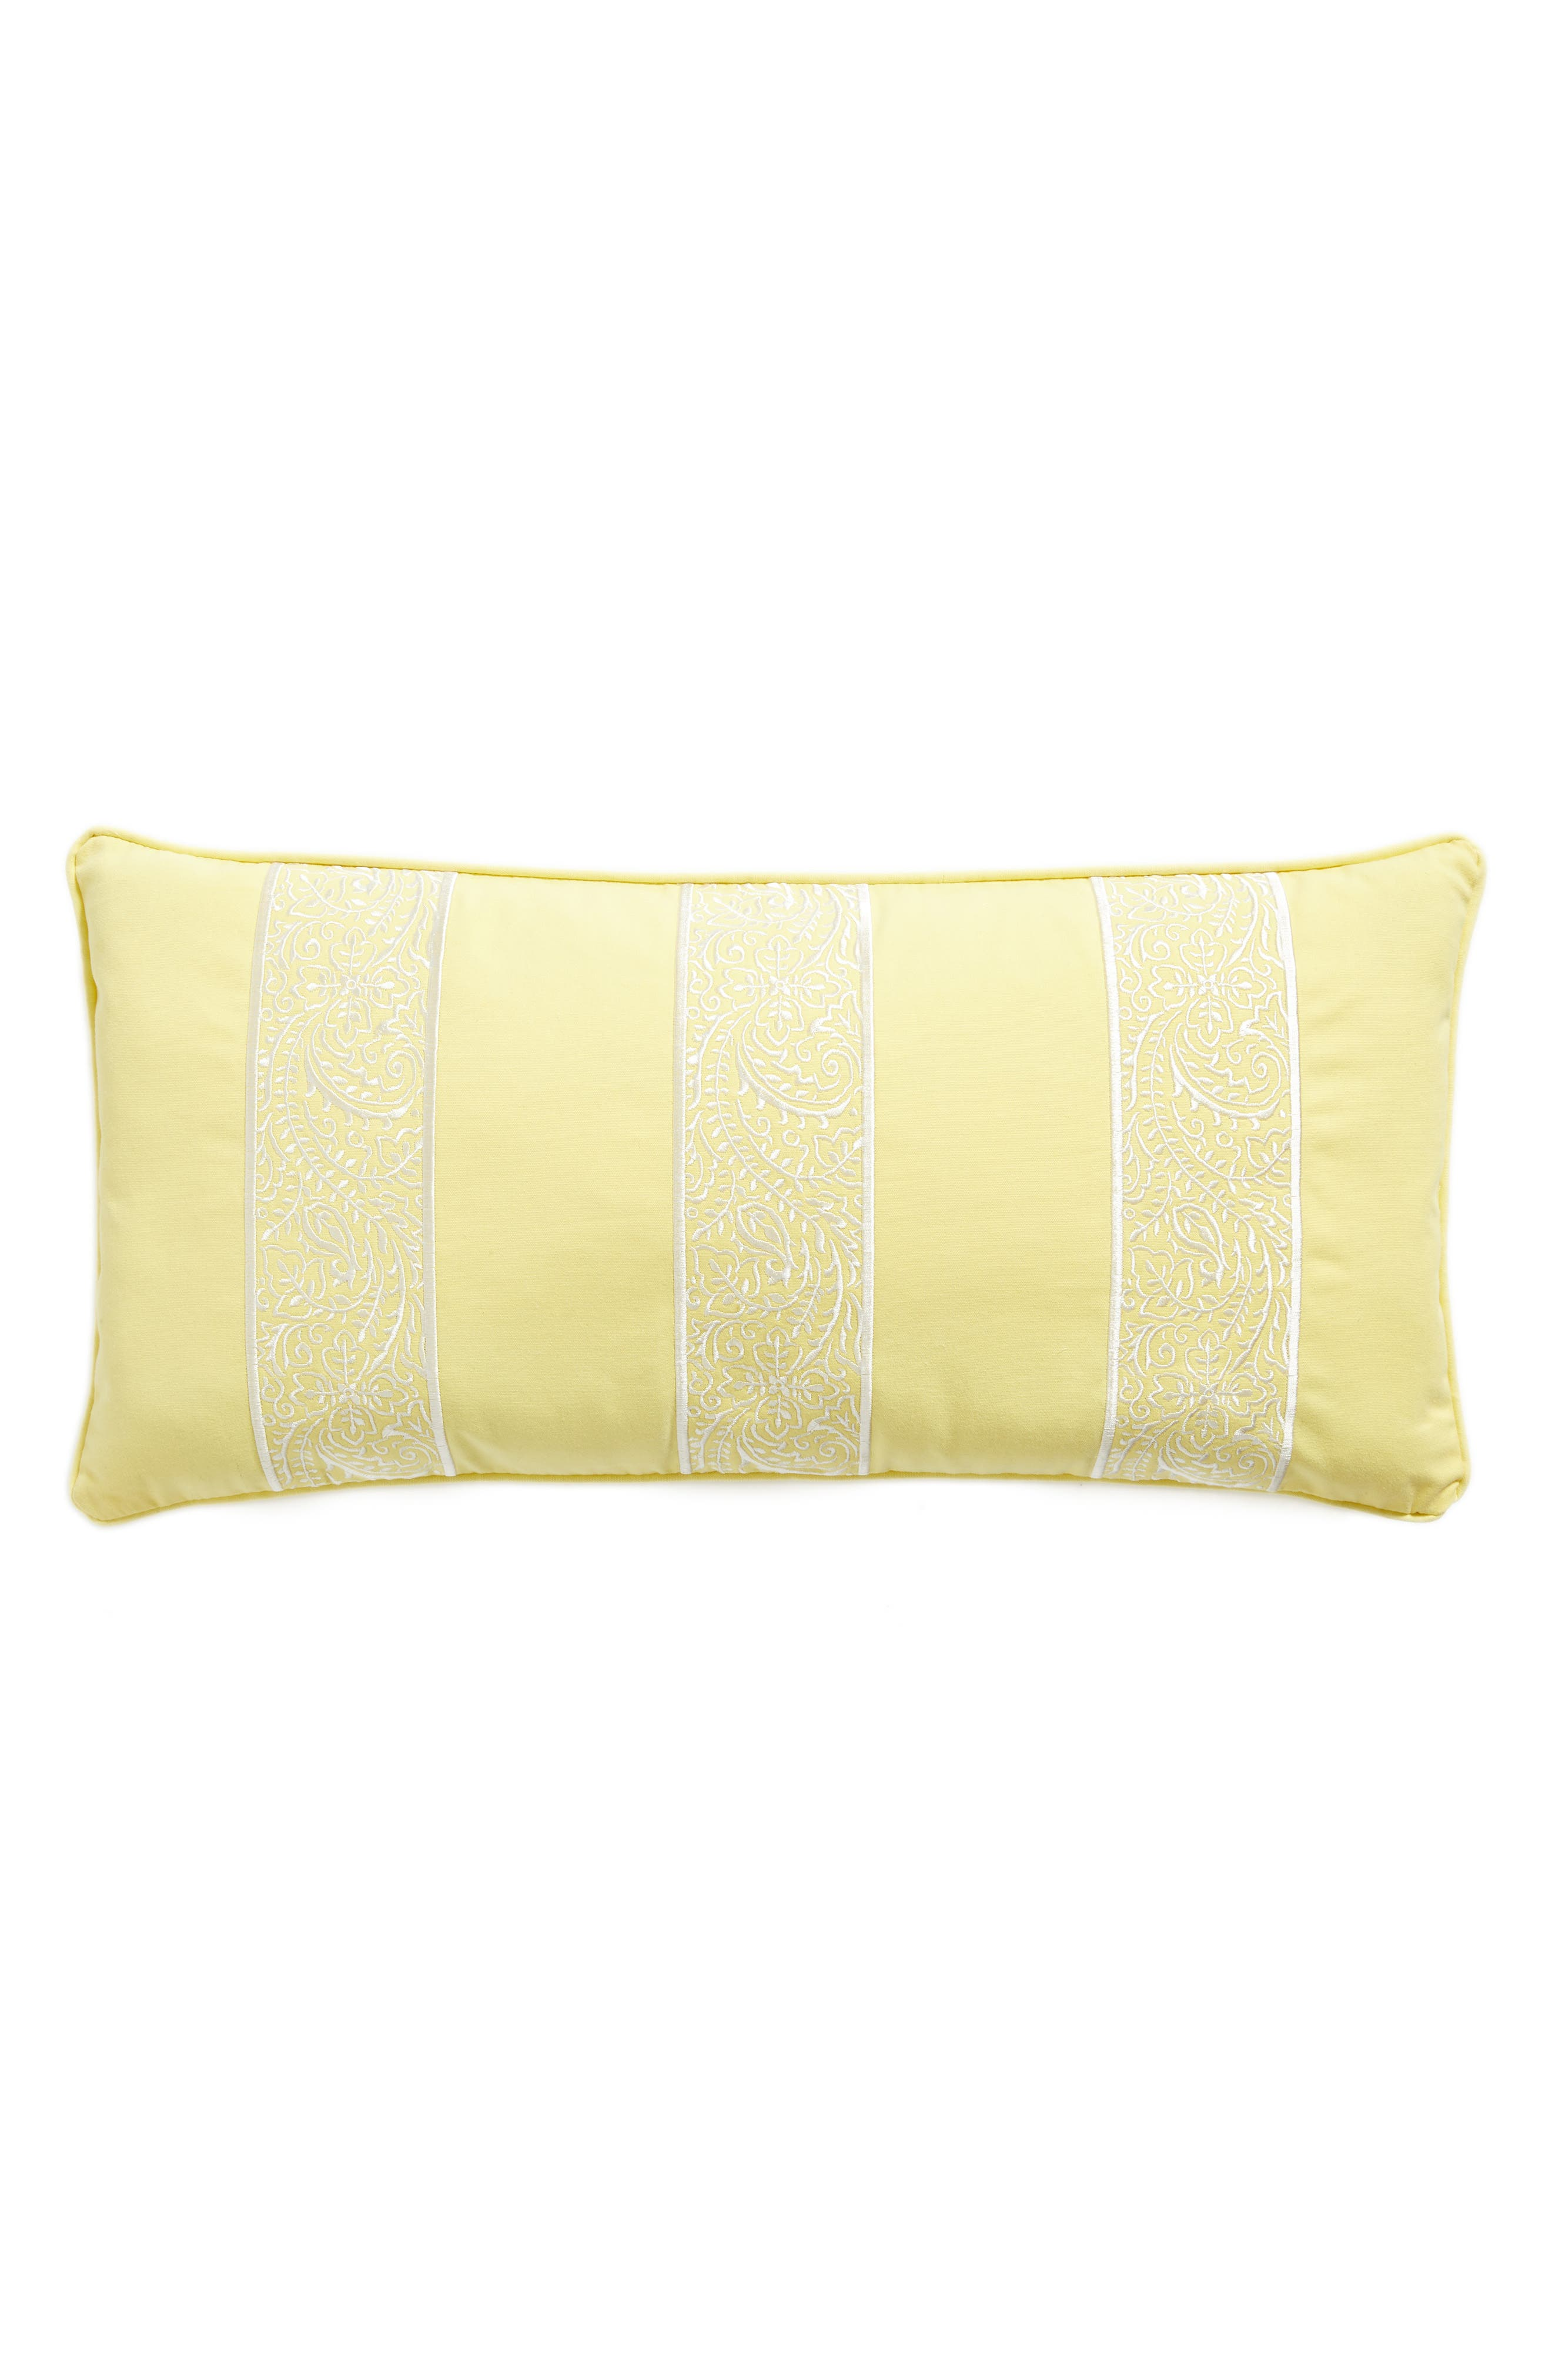 Alternate Image 1 Selected - Levtex Remie Embroidered Pillow